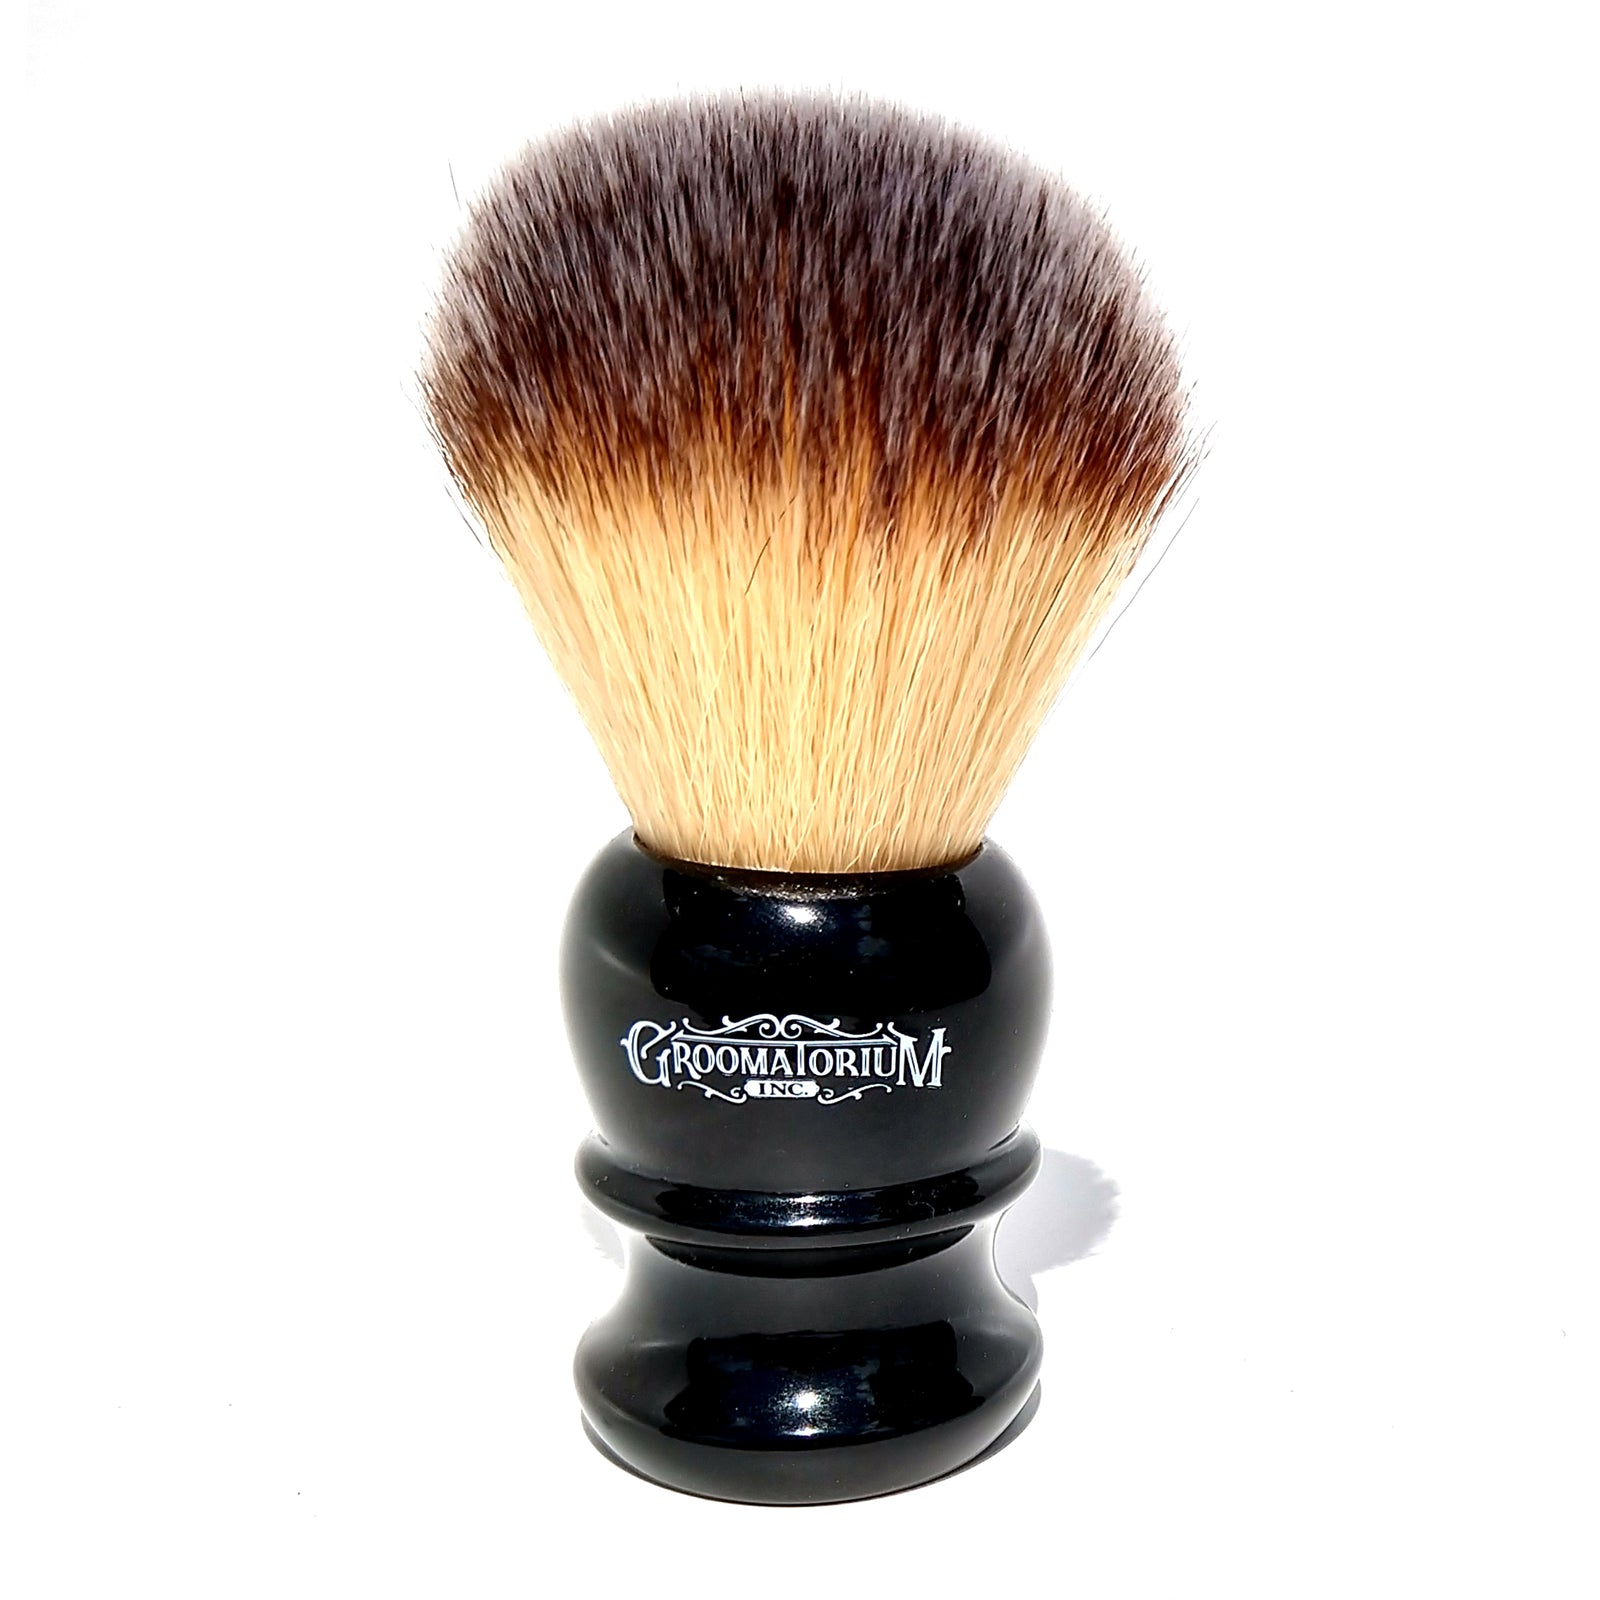 Groomatorium Synthetic Shaving Brush - 24mm